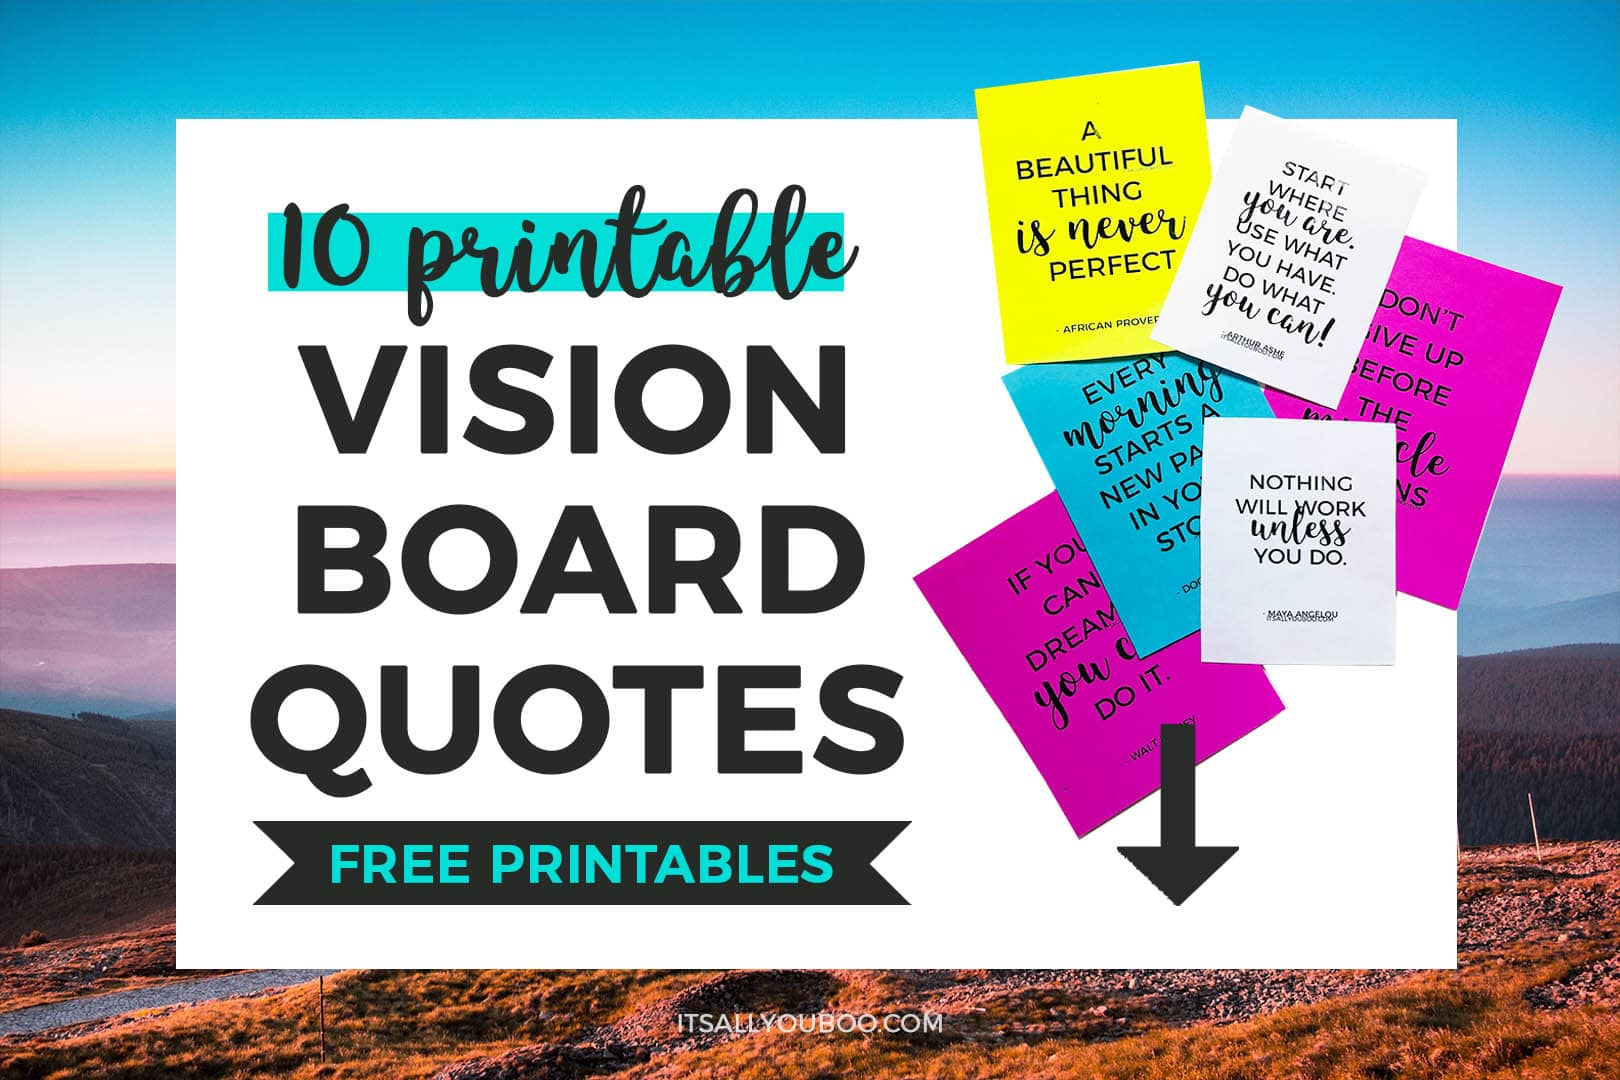 10 FREE Printable Vision Board Quotes